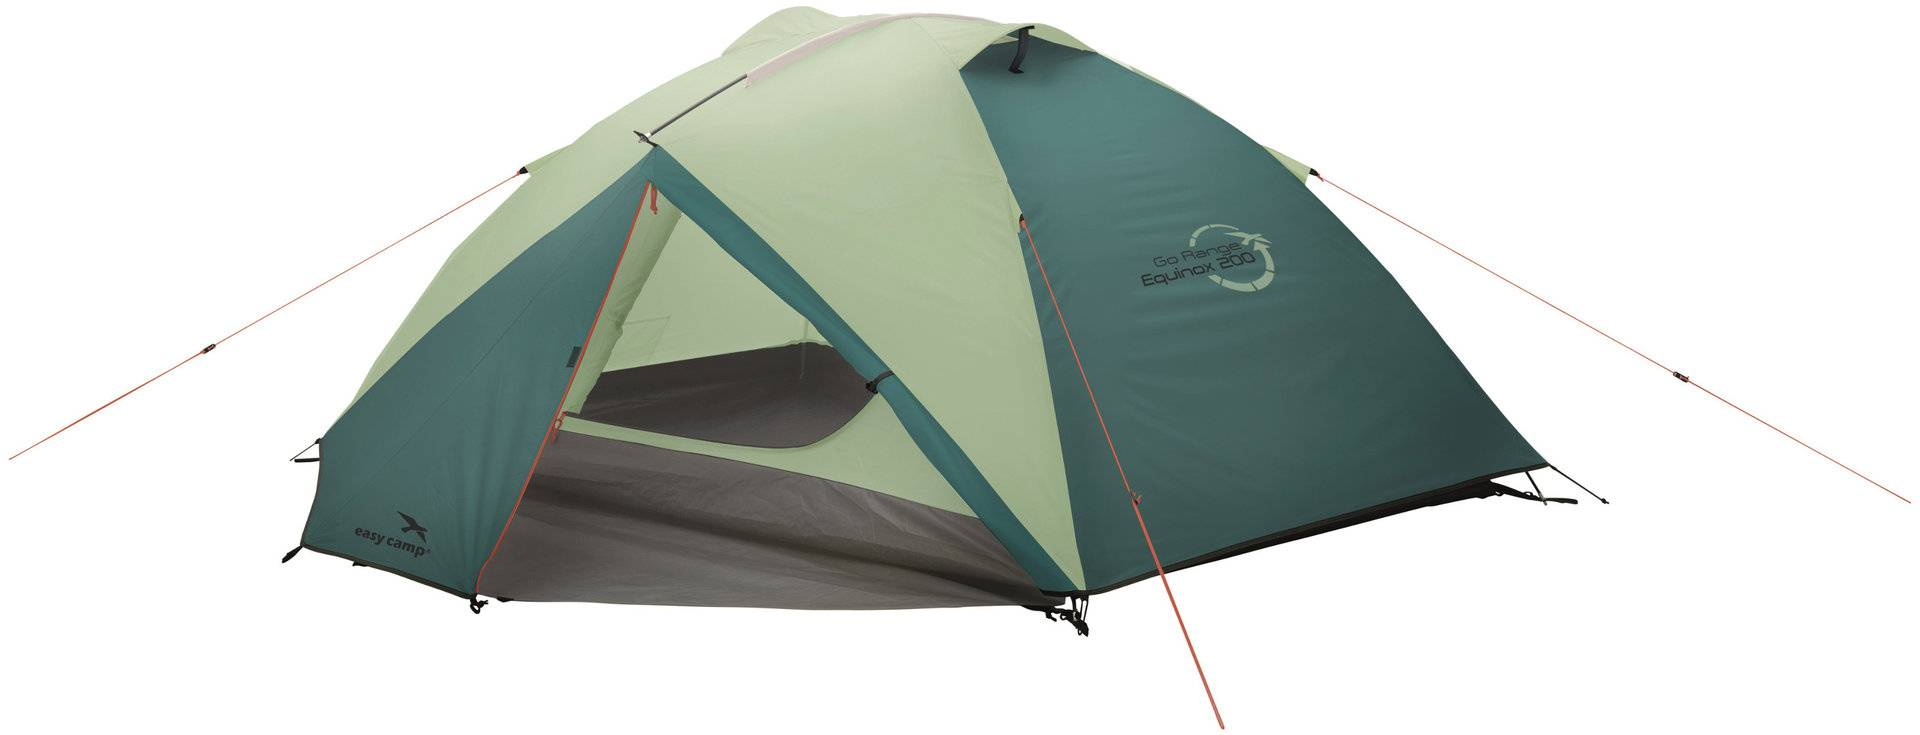 Easy Camp Equinox 200 Tent Green One Size